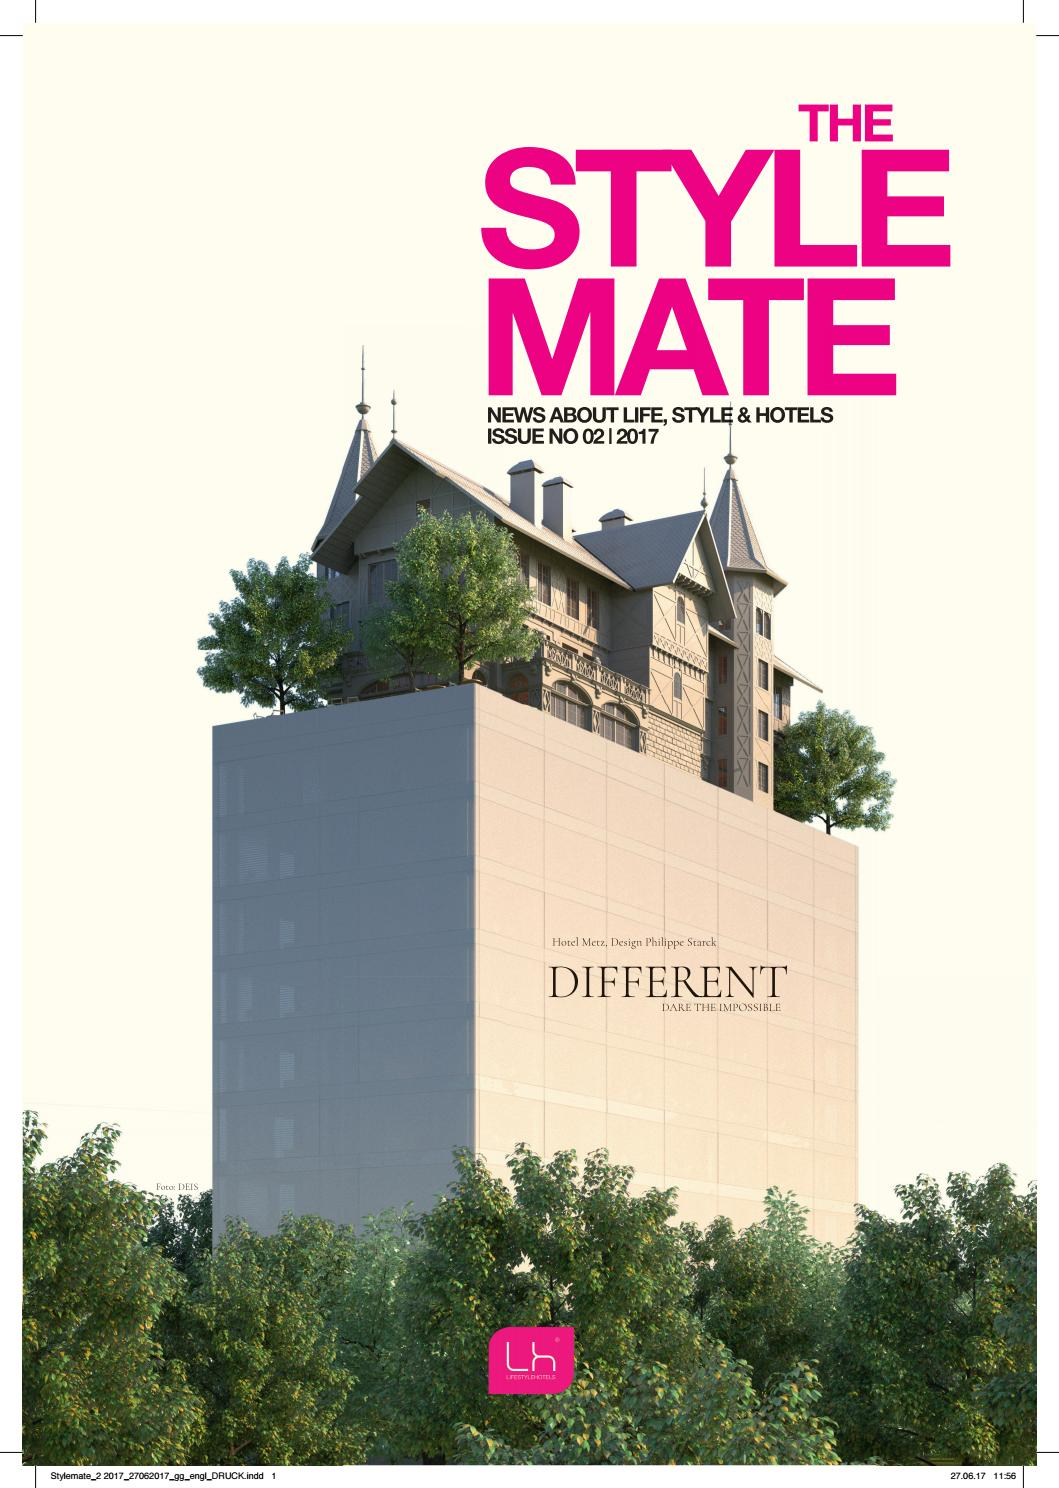 LIFESTYLEHOTELS Magazin  THE STYLEMATE, Issue No 02/2017, Different, en